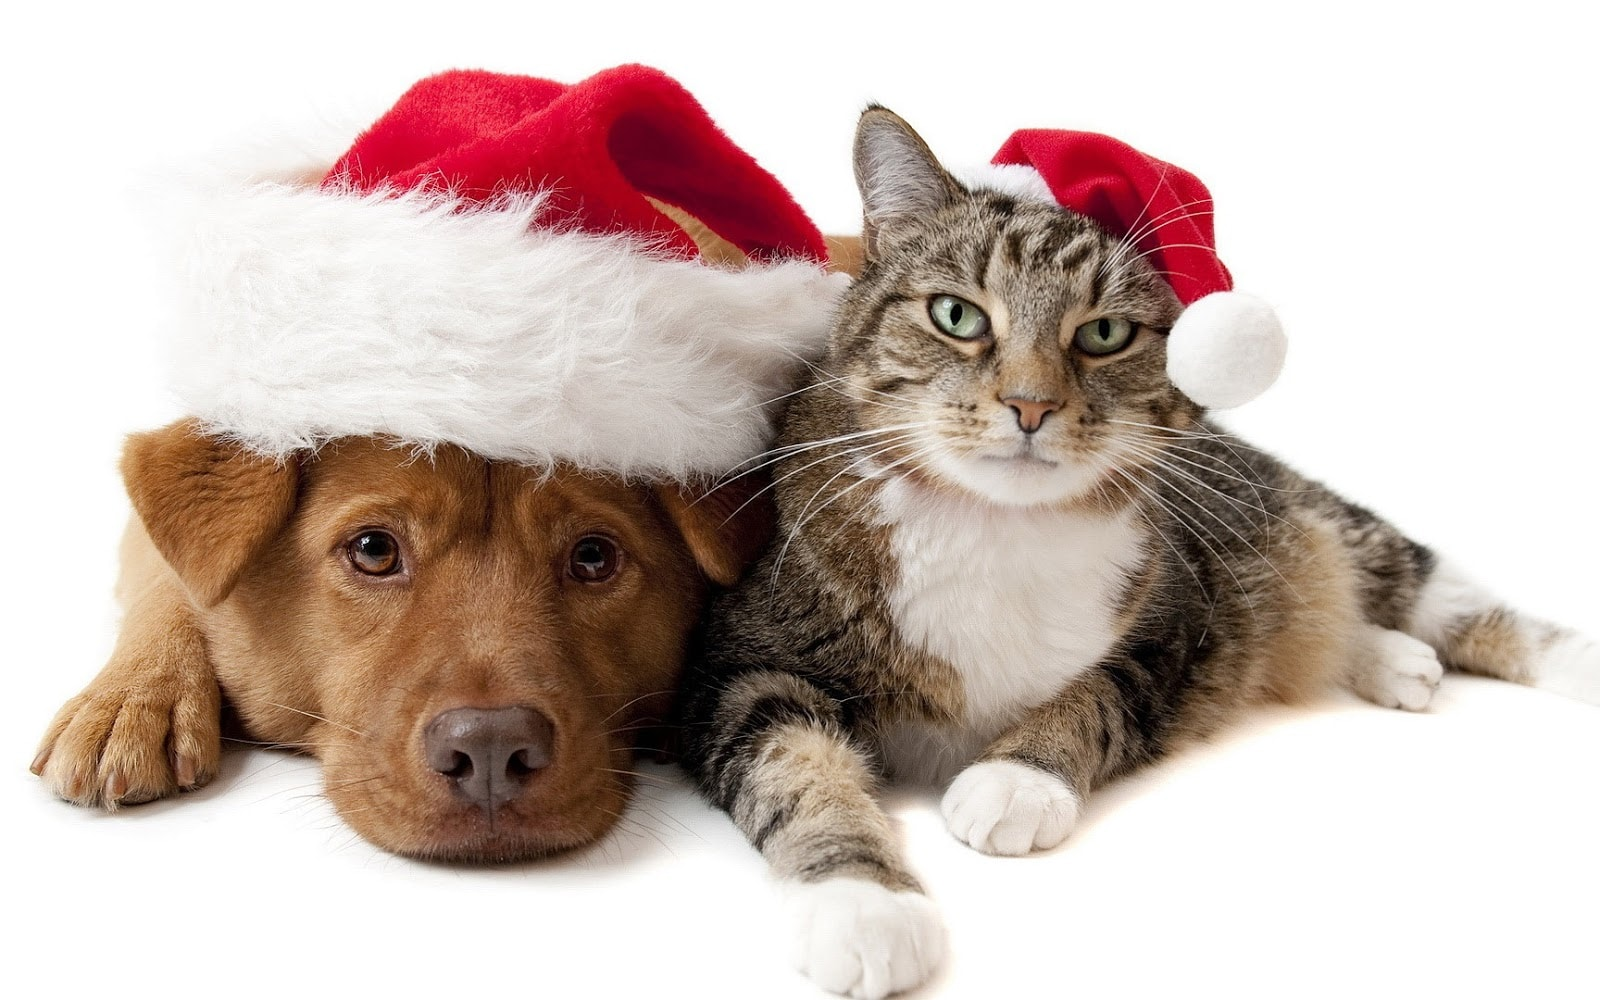 wallpaper with a cat and a dog wearing christmas hats hd cat and dog 1600x1000